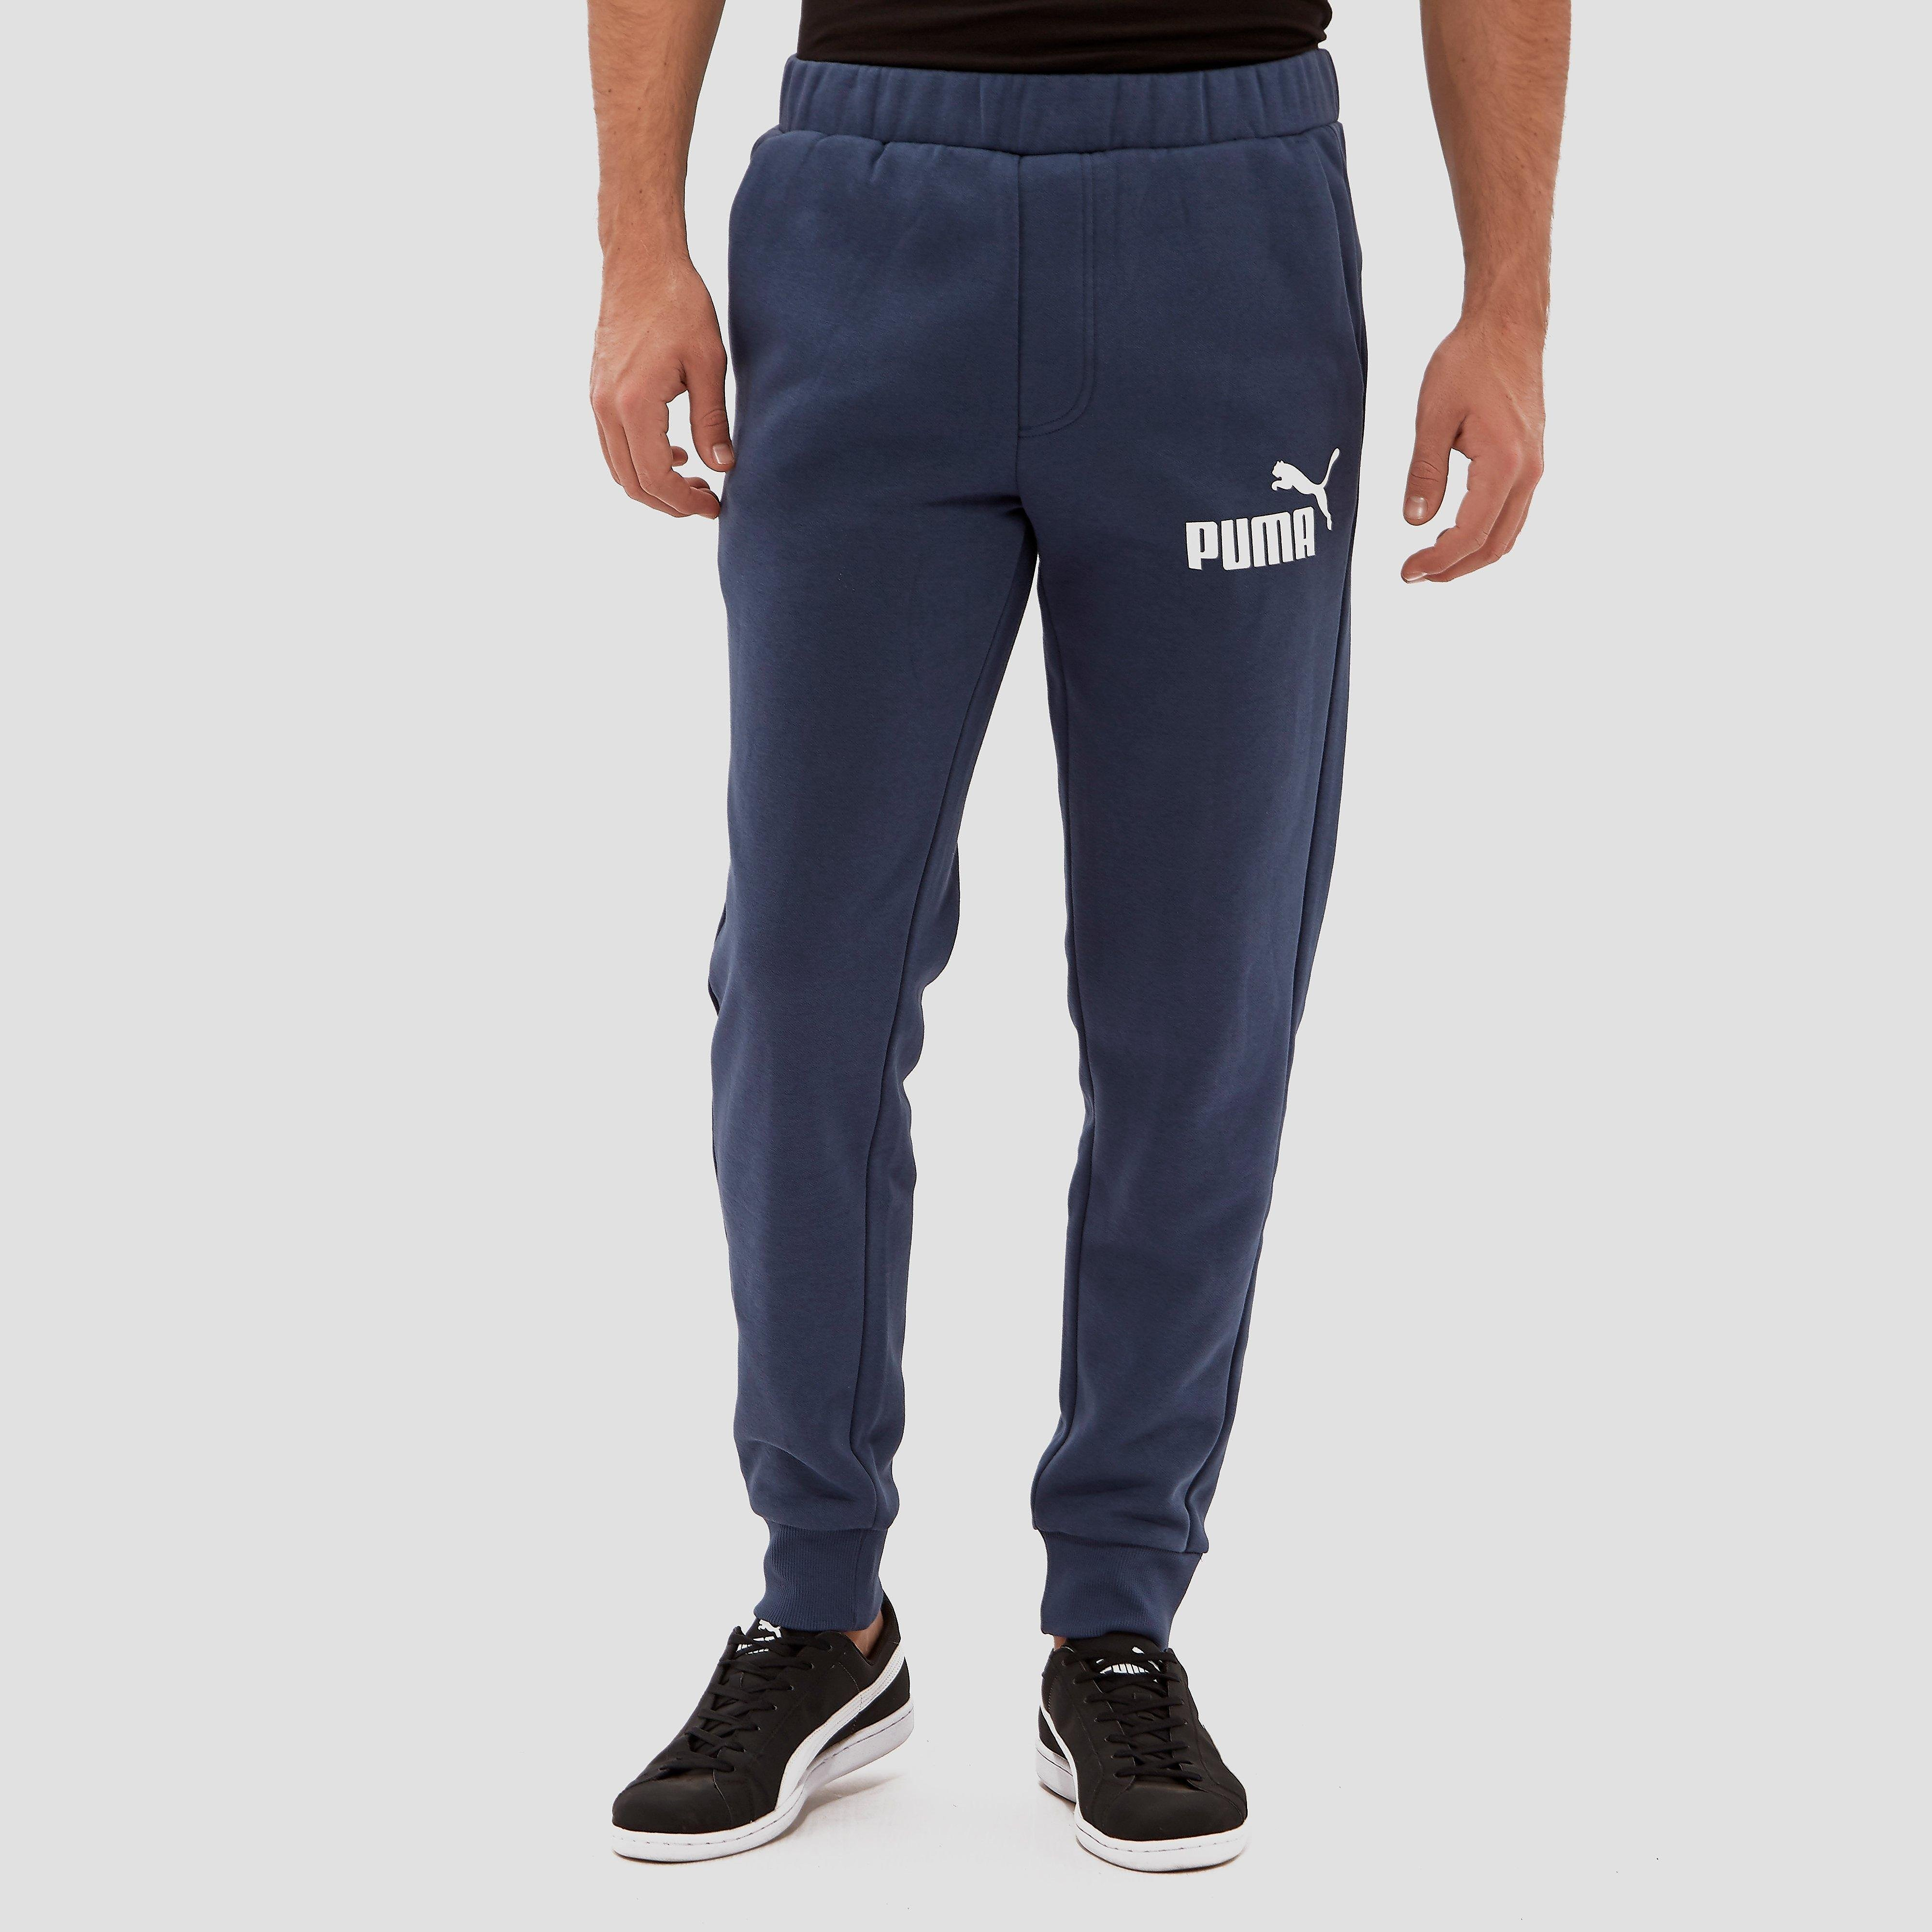 PUMA NO. 1 LOGO JOGGINGBROEK BLAUW HEREN